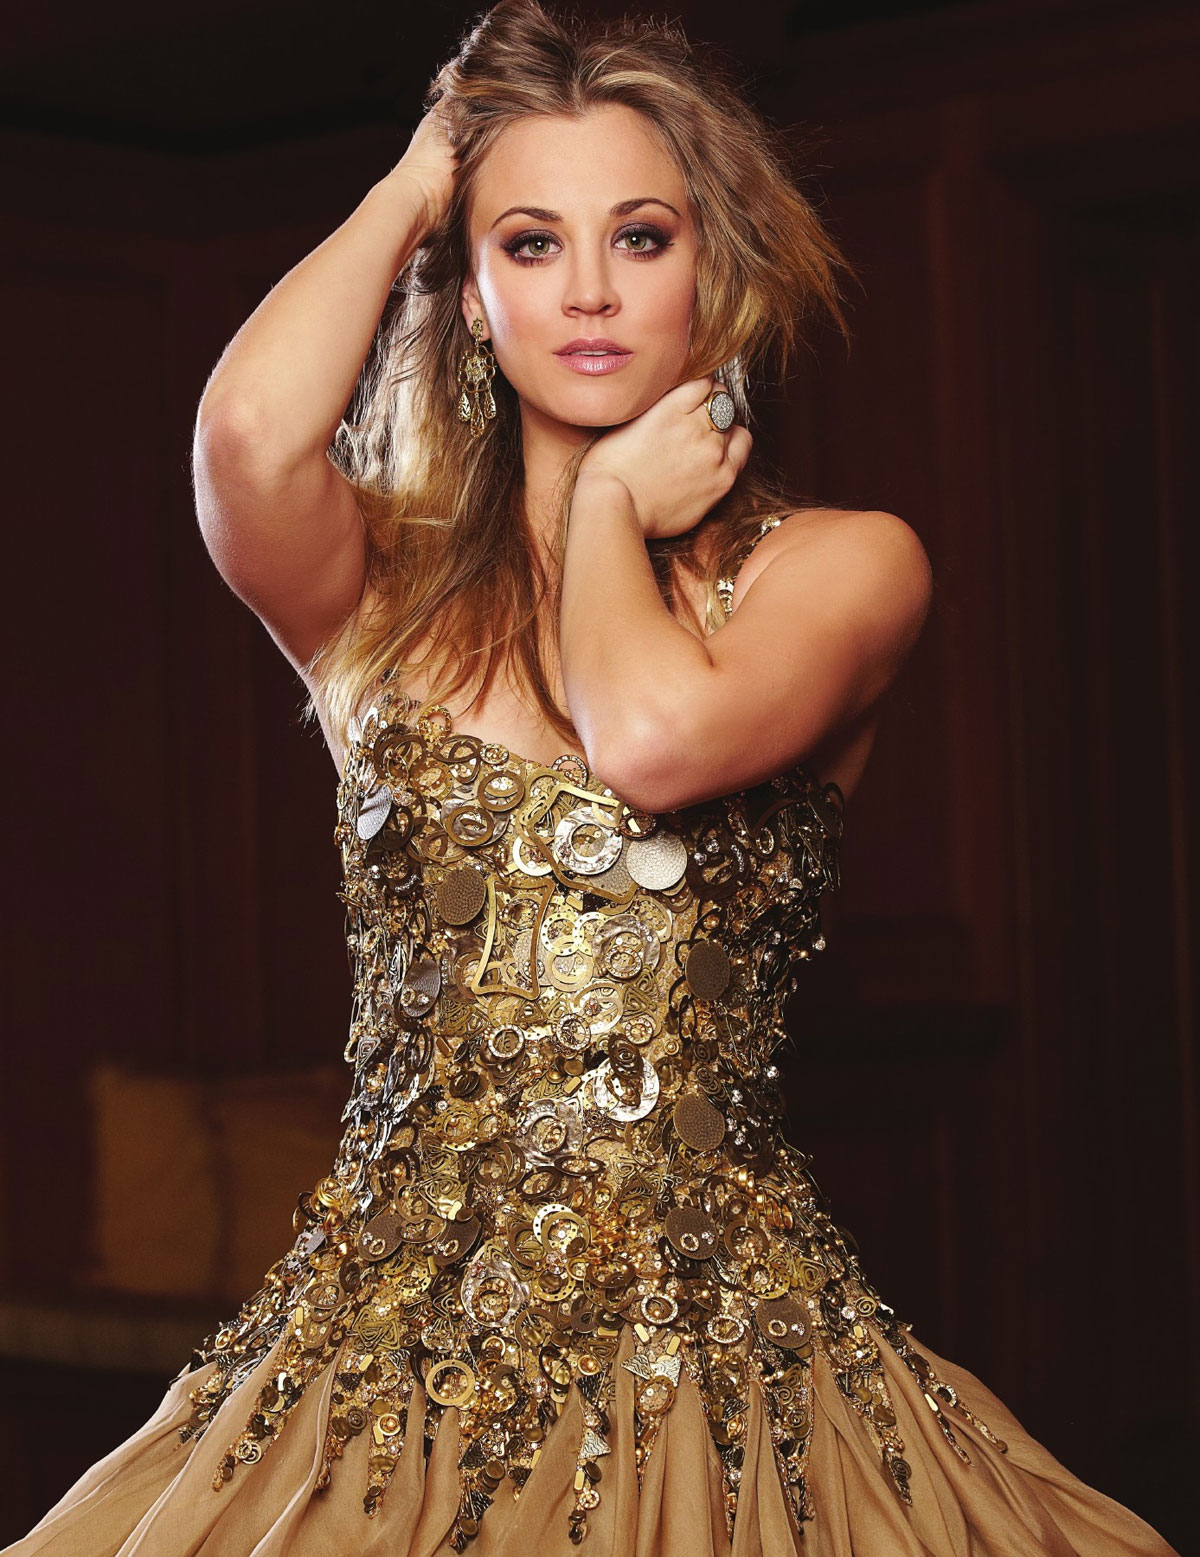 KALEY CUOCO in Beverly Hills Lifestyle Magazine